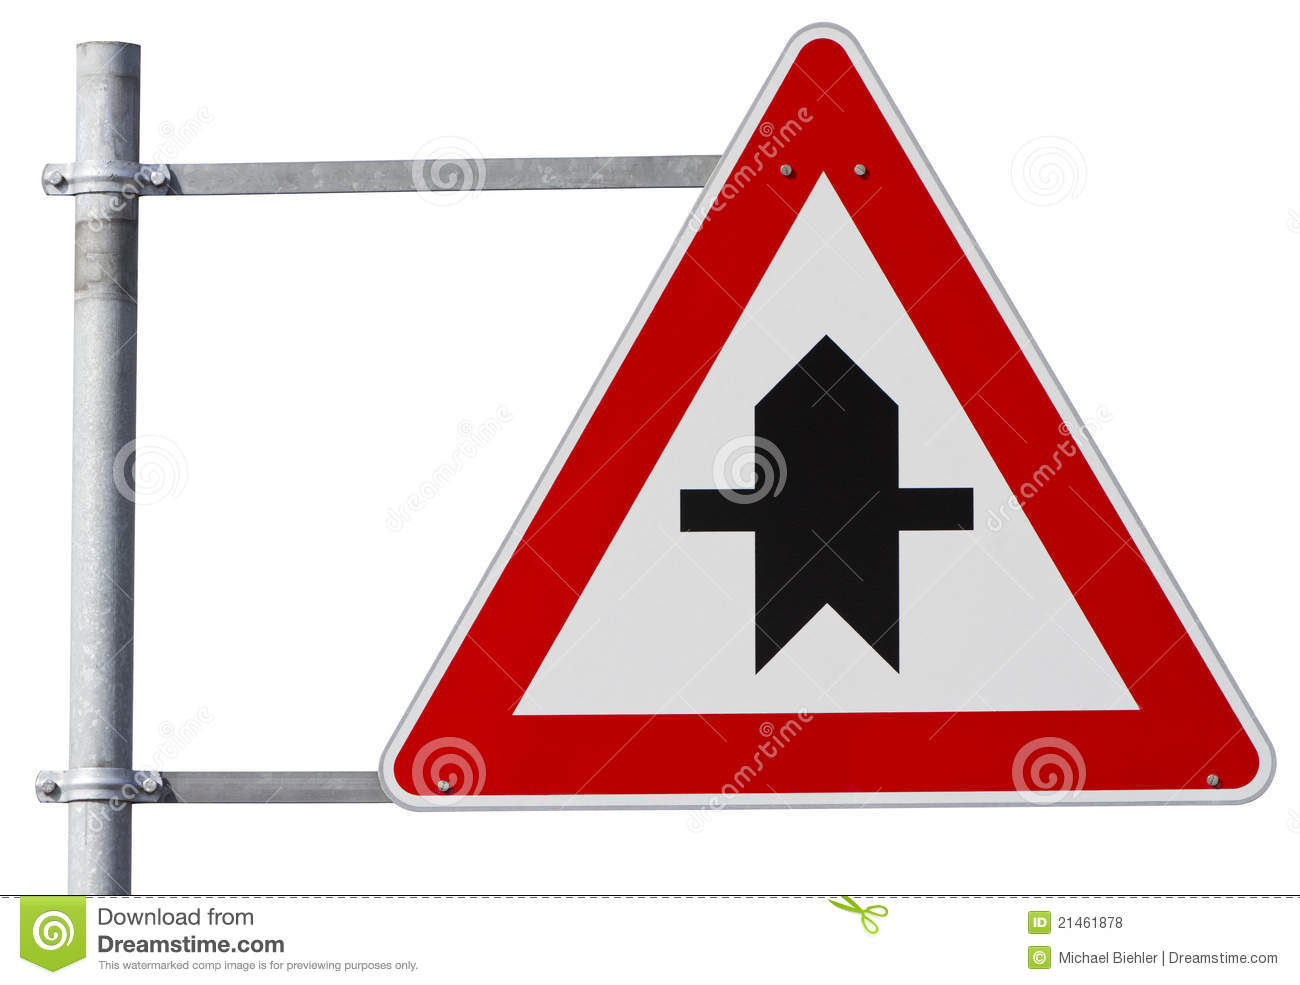 German right of way sign (clipping path included)